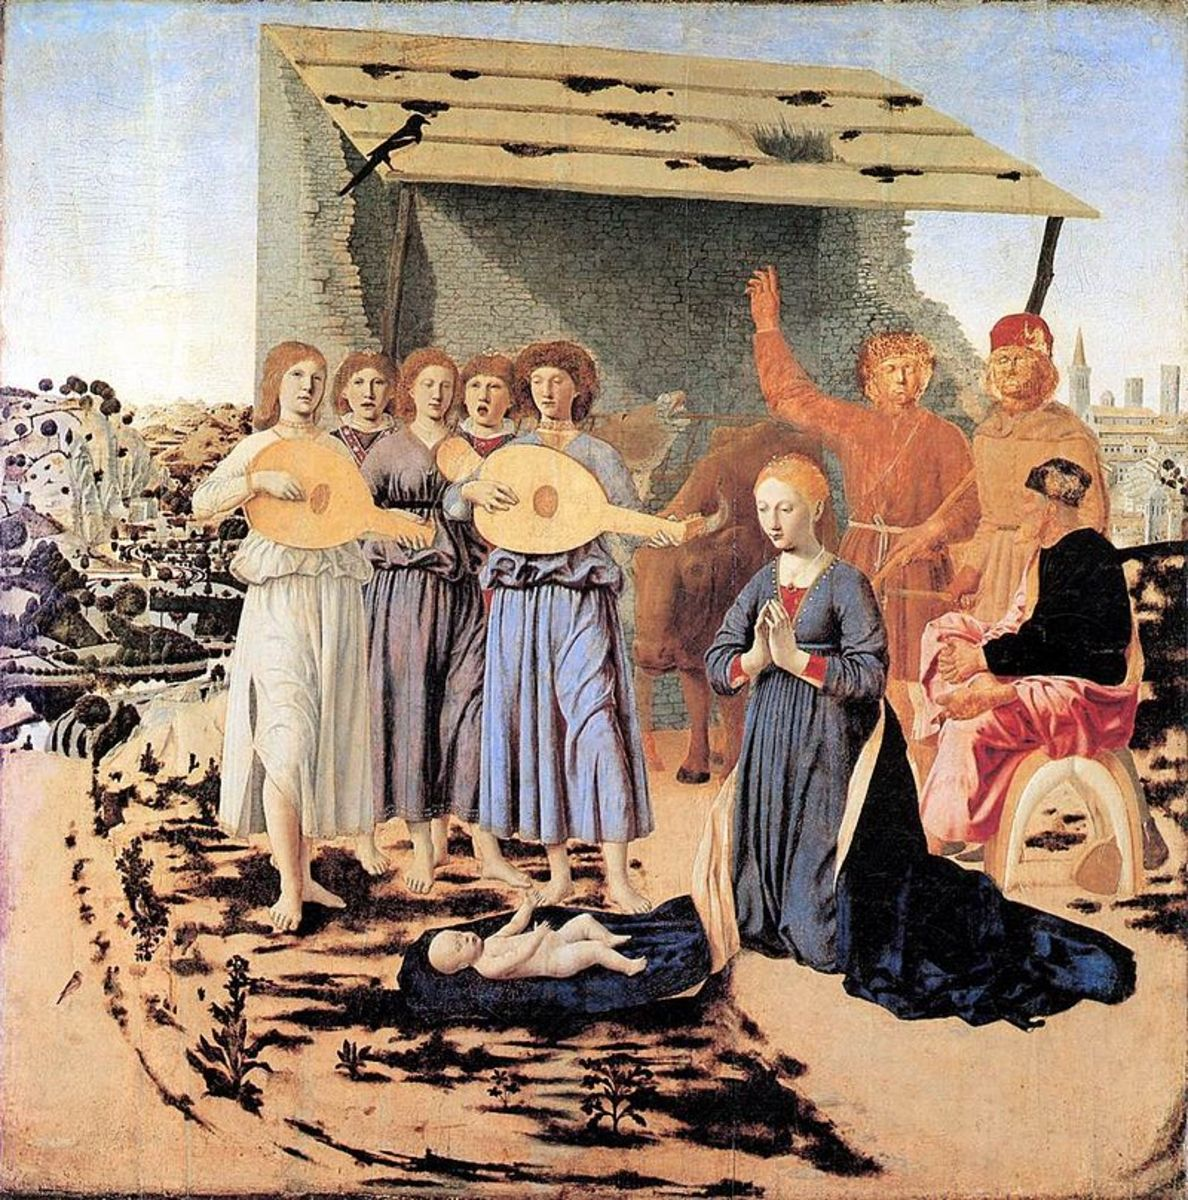 Piero della Fransceca's Nativity shows a lone magpie on the roof; a presage of sorrow to come.